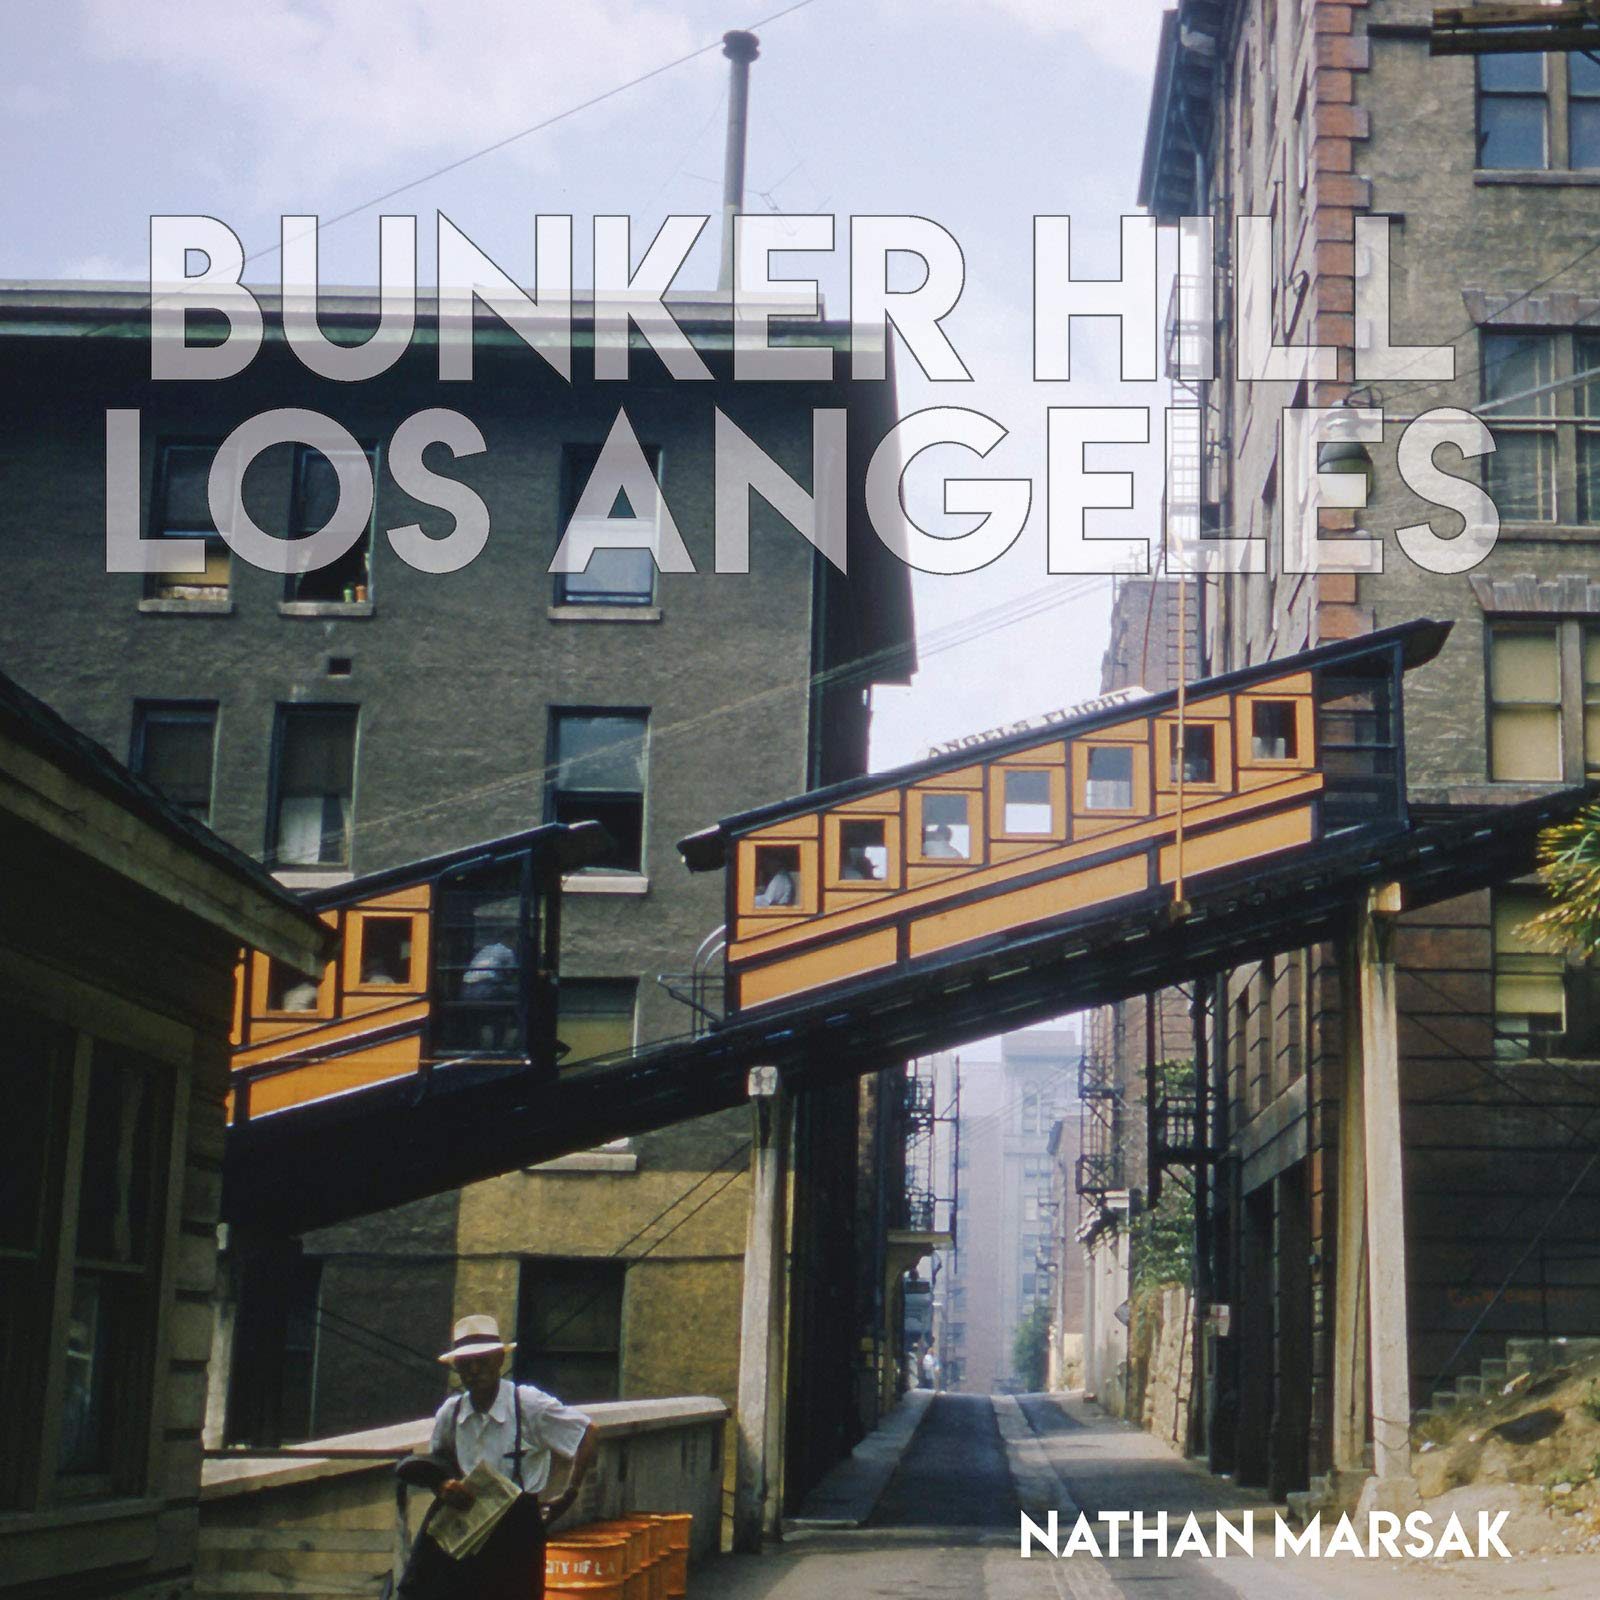 bunker hill los angeles book